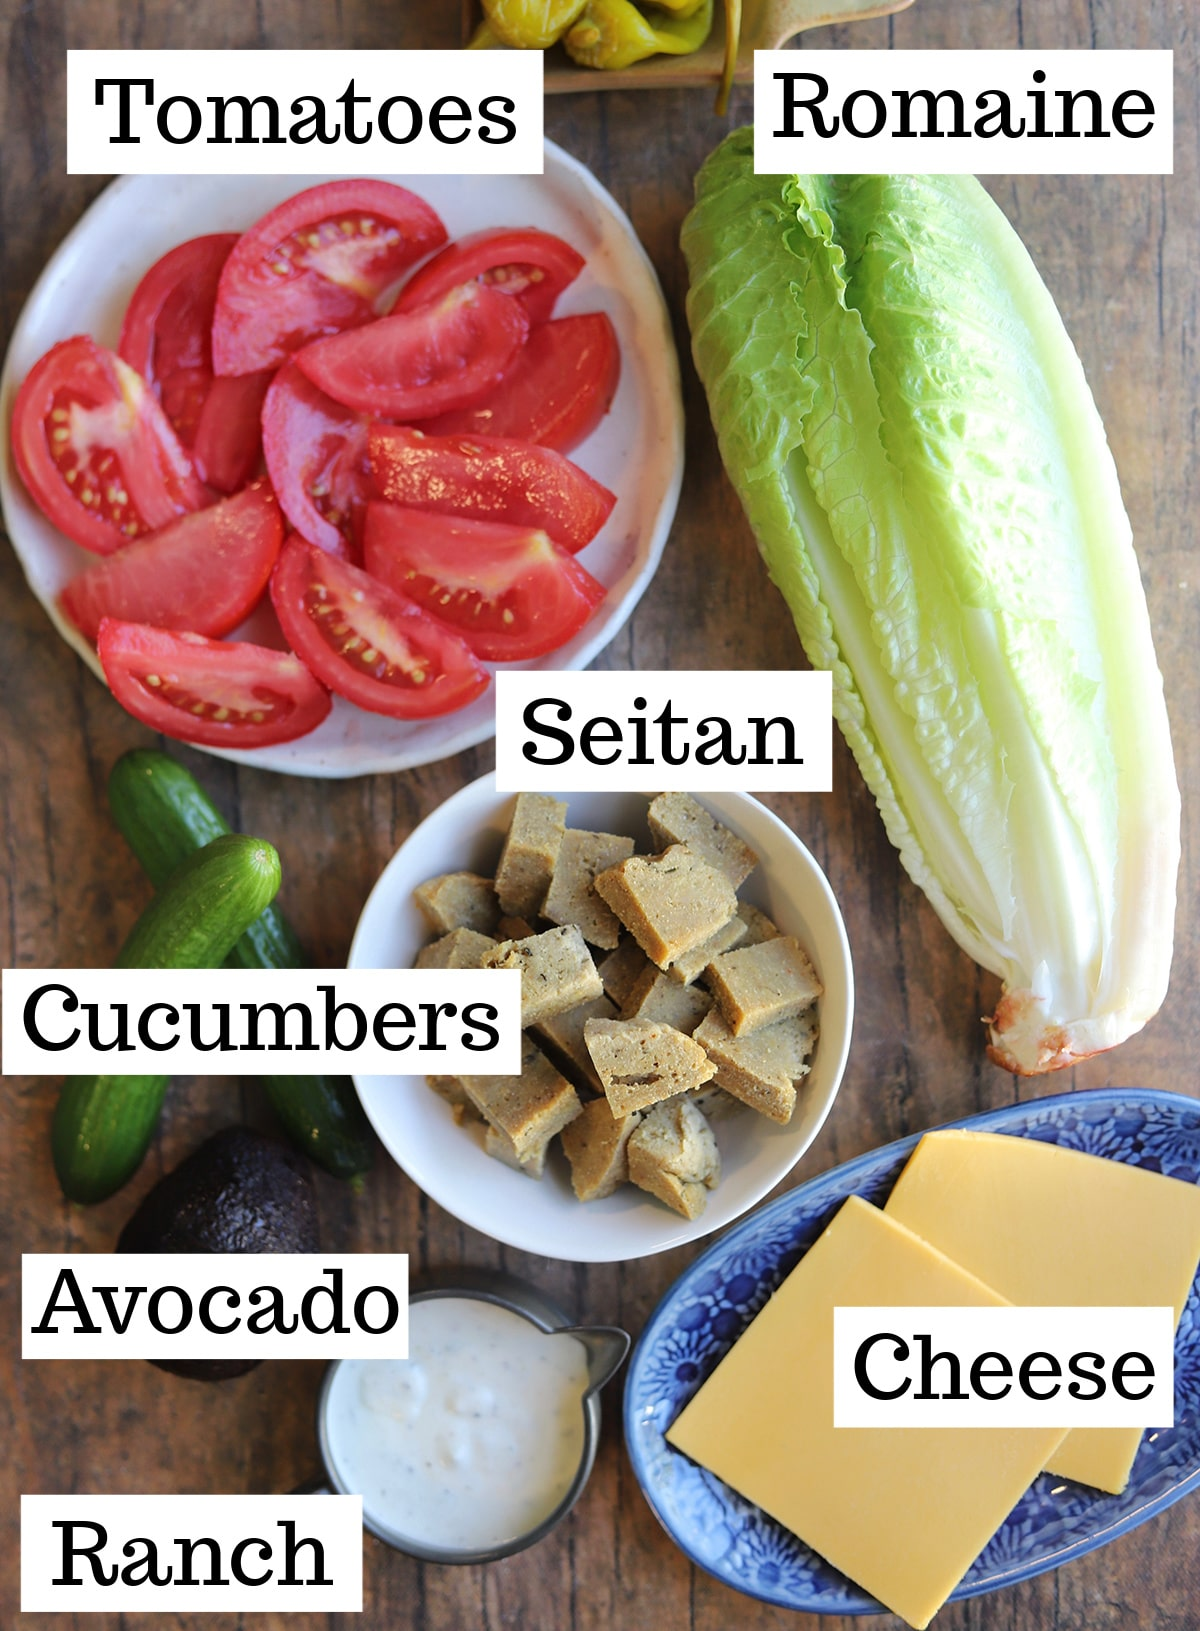 Labeled ingredients for salad on table.